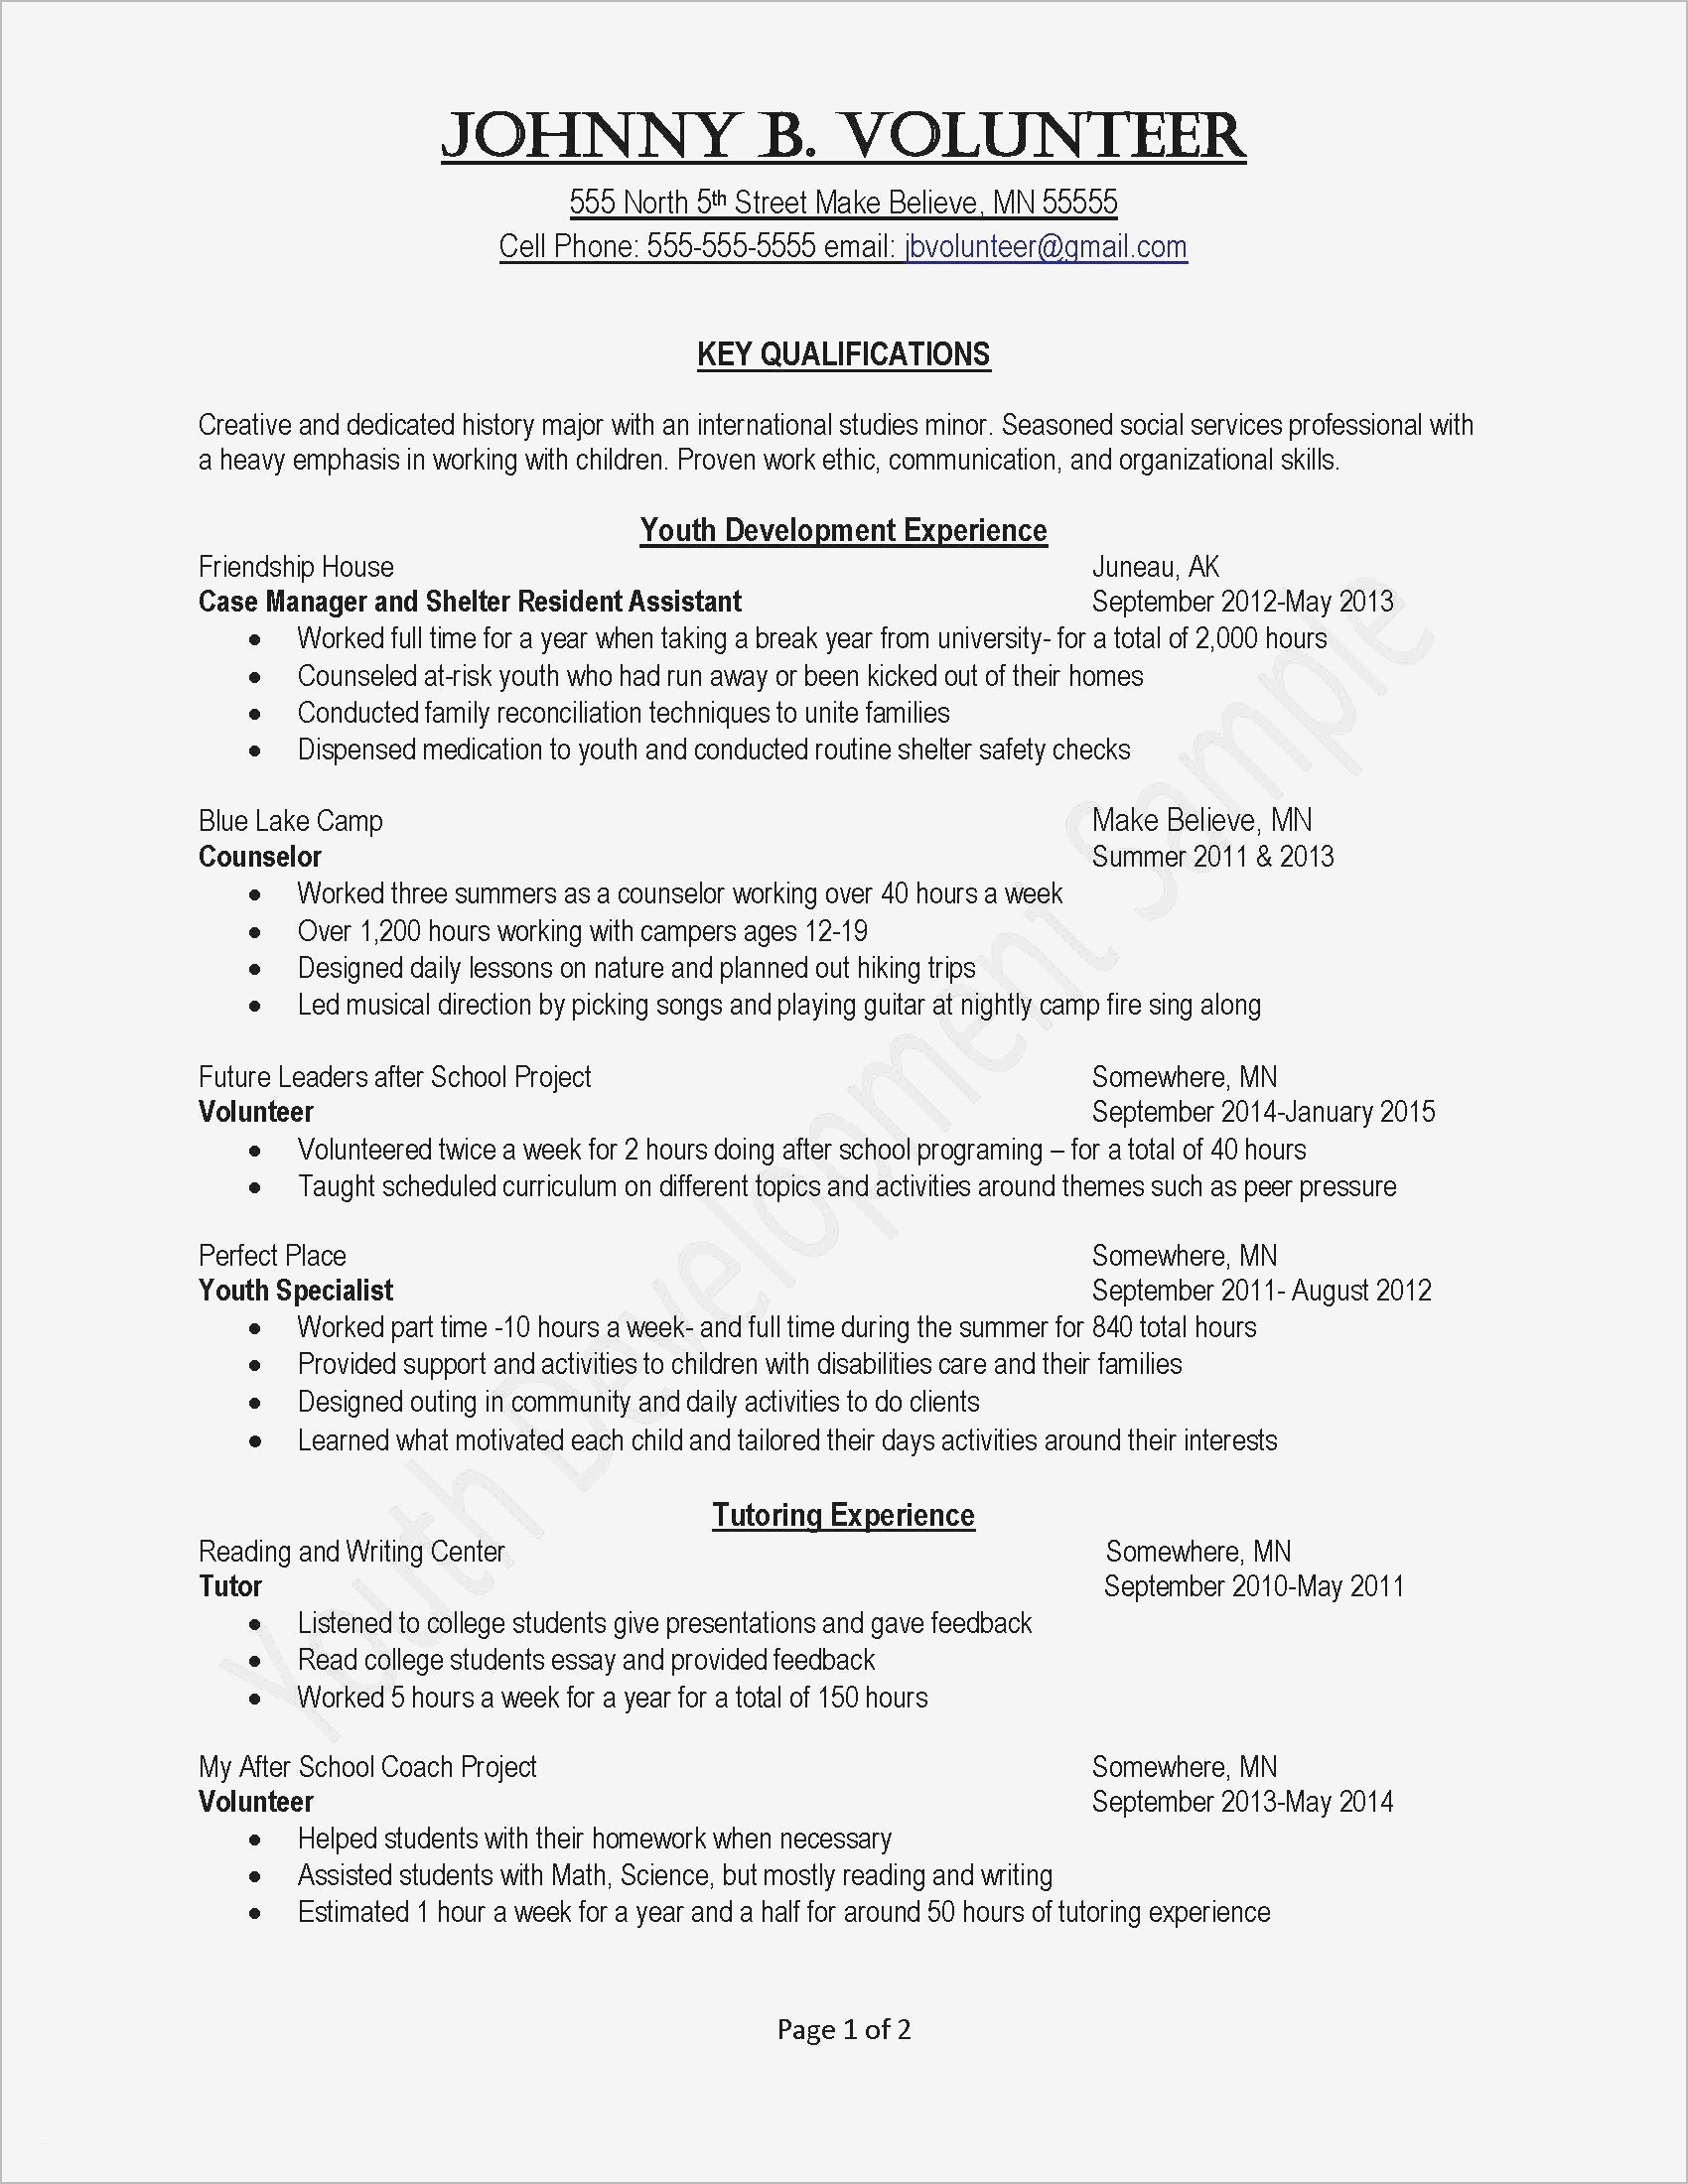 Professional Proposal Letter Template - Sample Email Cover Letter for Business Proposal Inspirational Job